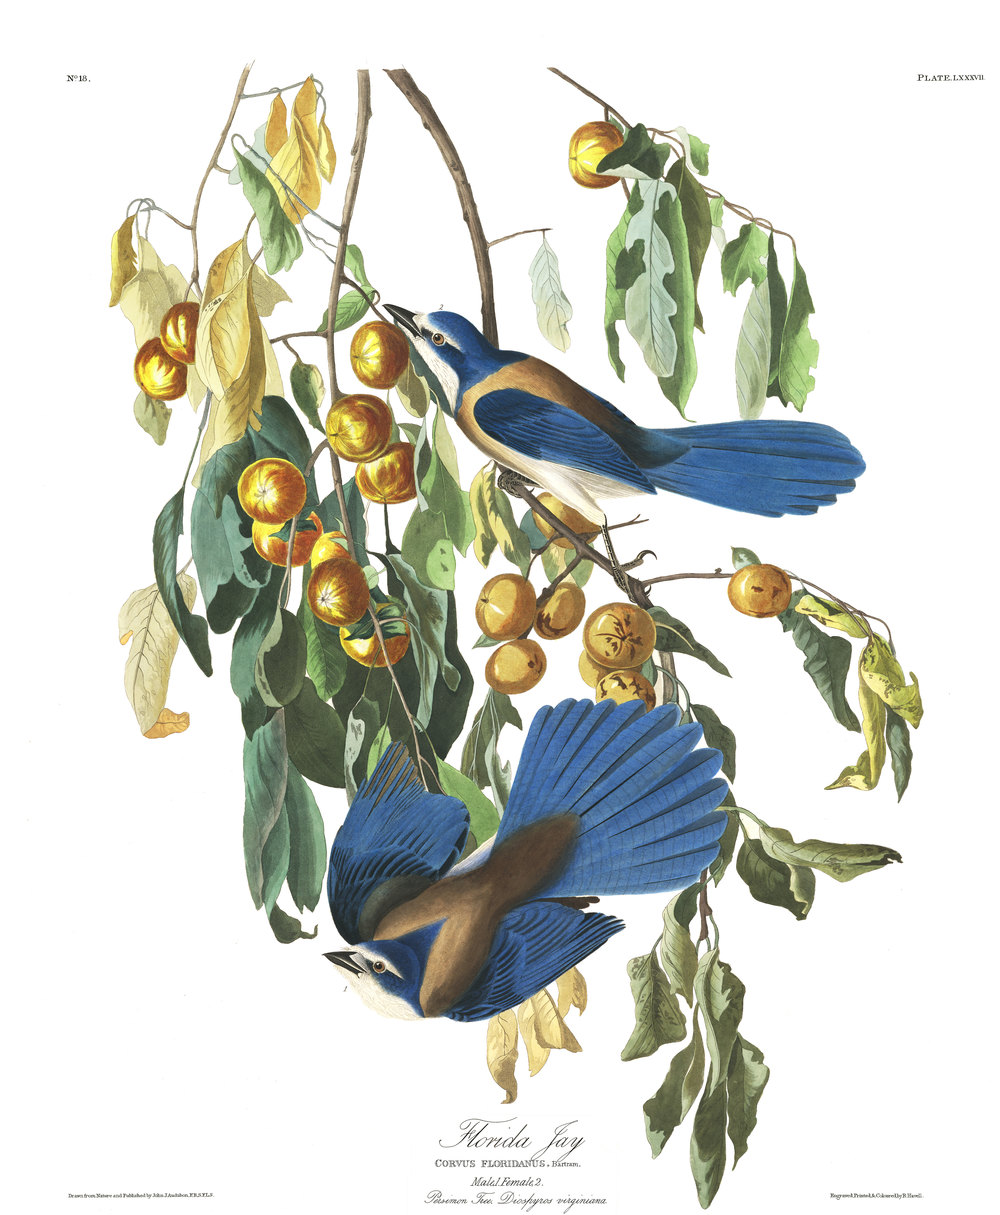 plate 87, Flordia Jay